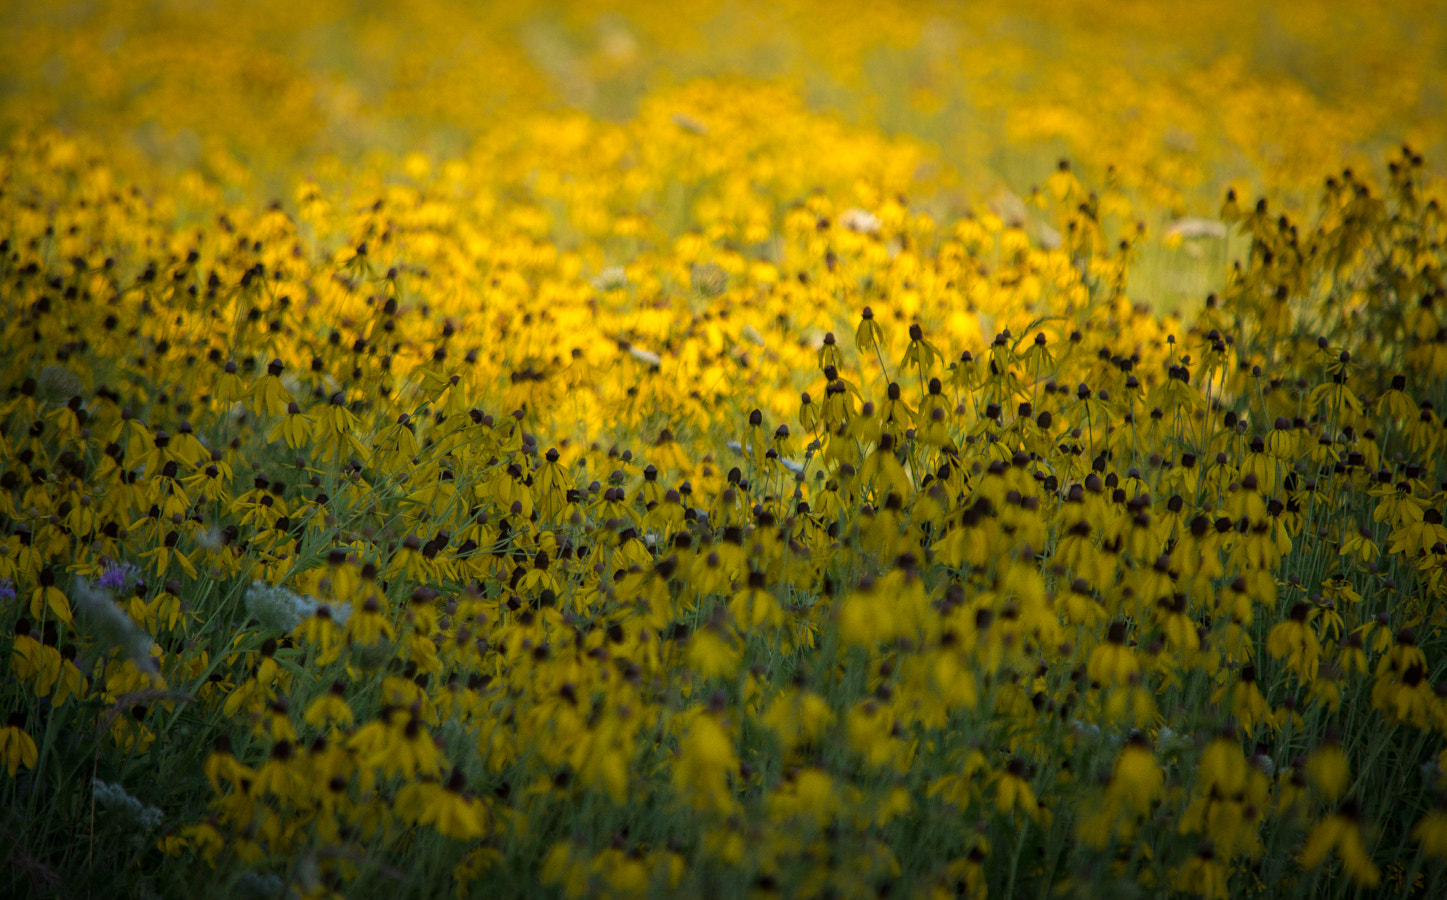 Photograph Coneflower Field by Stevan Tontich on 500px